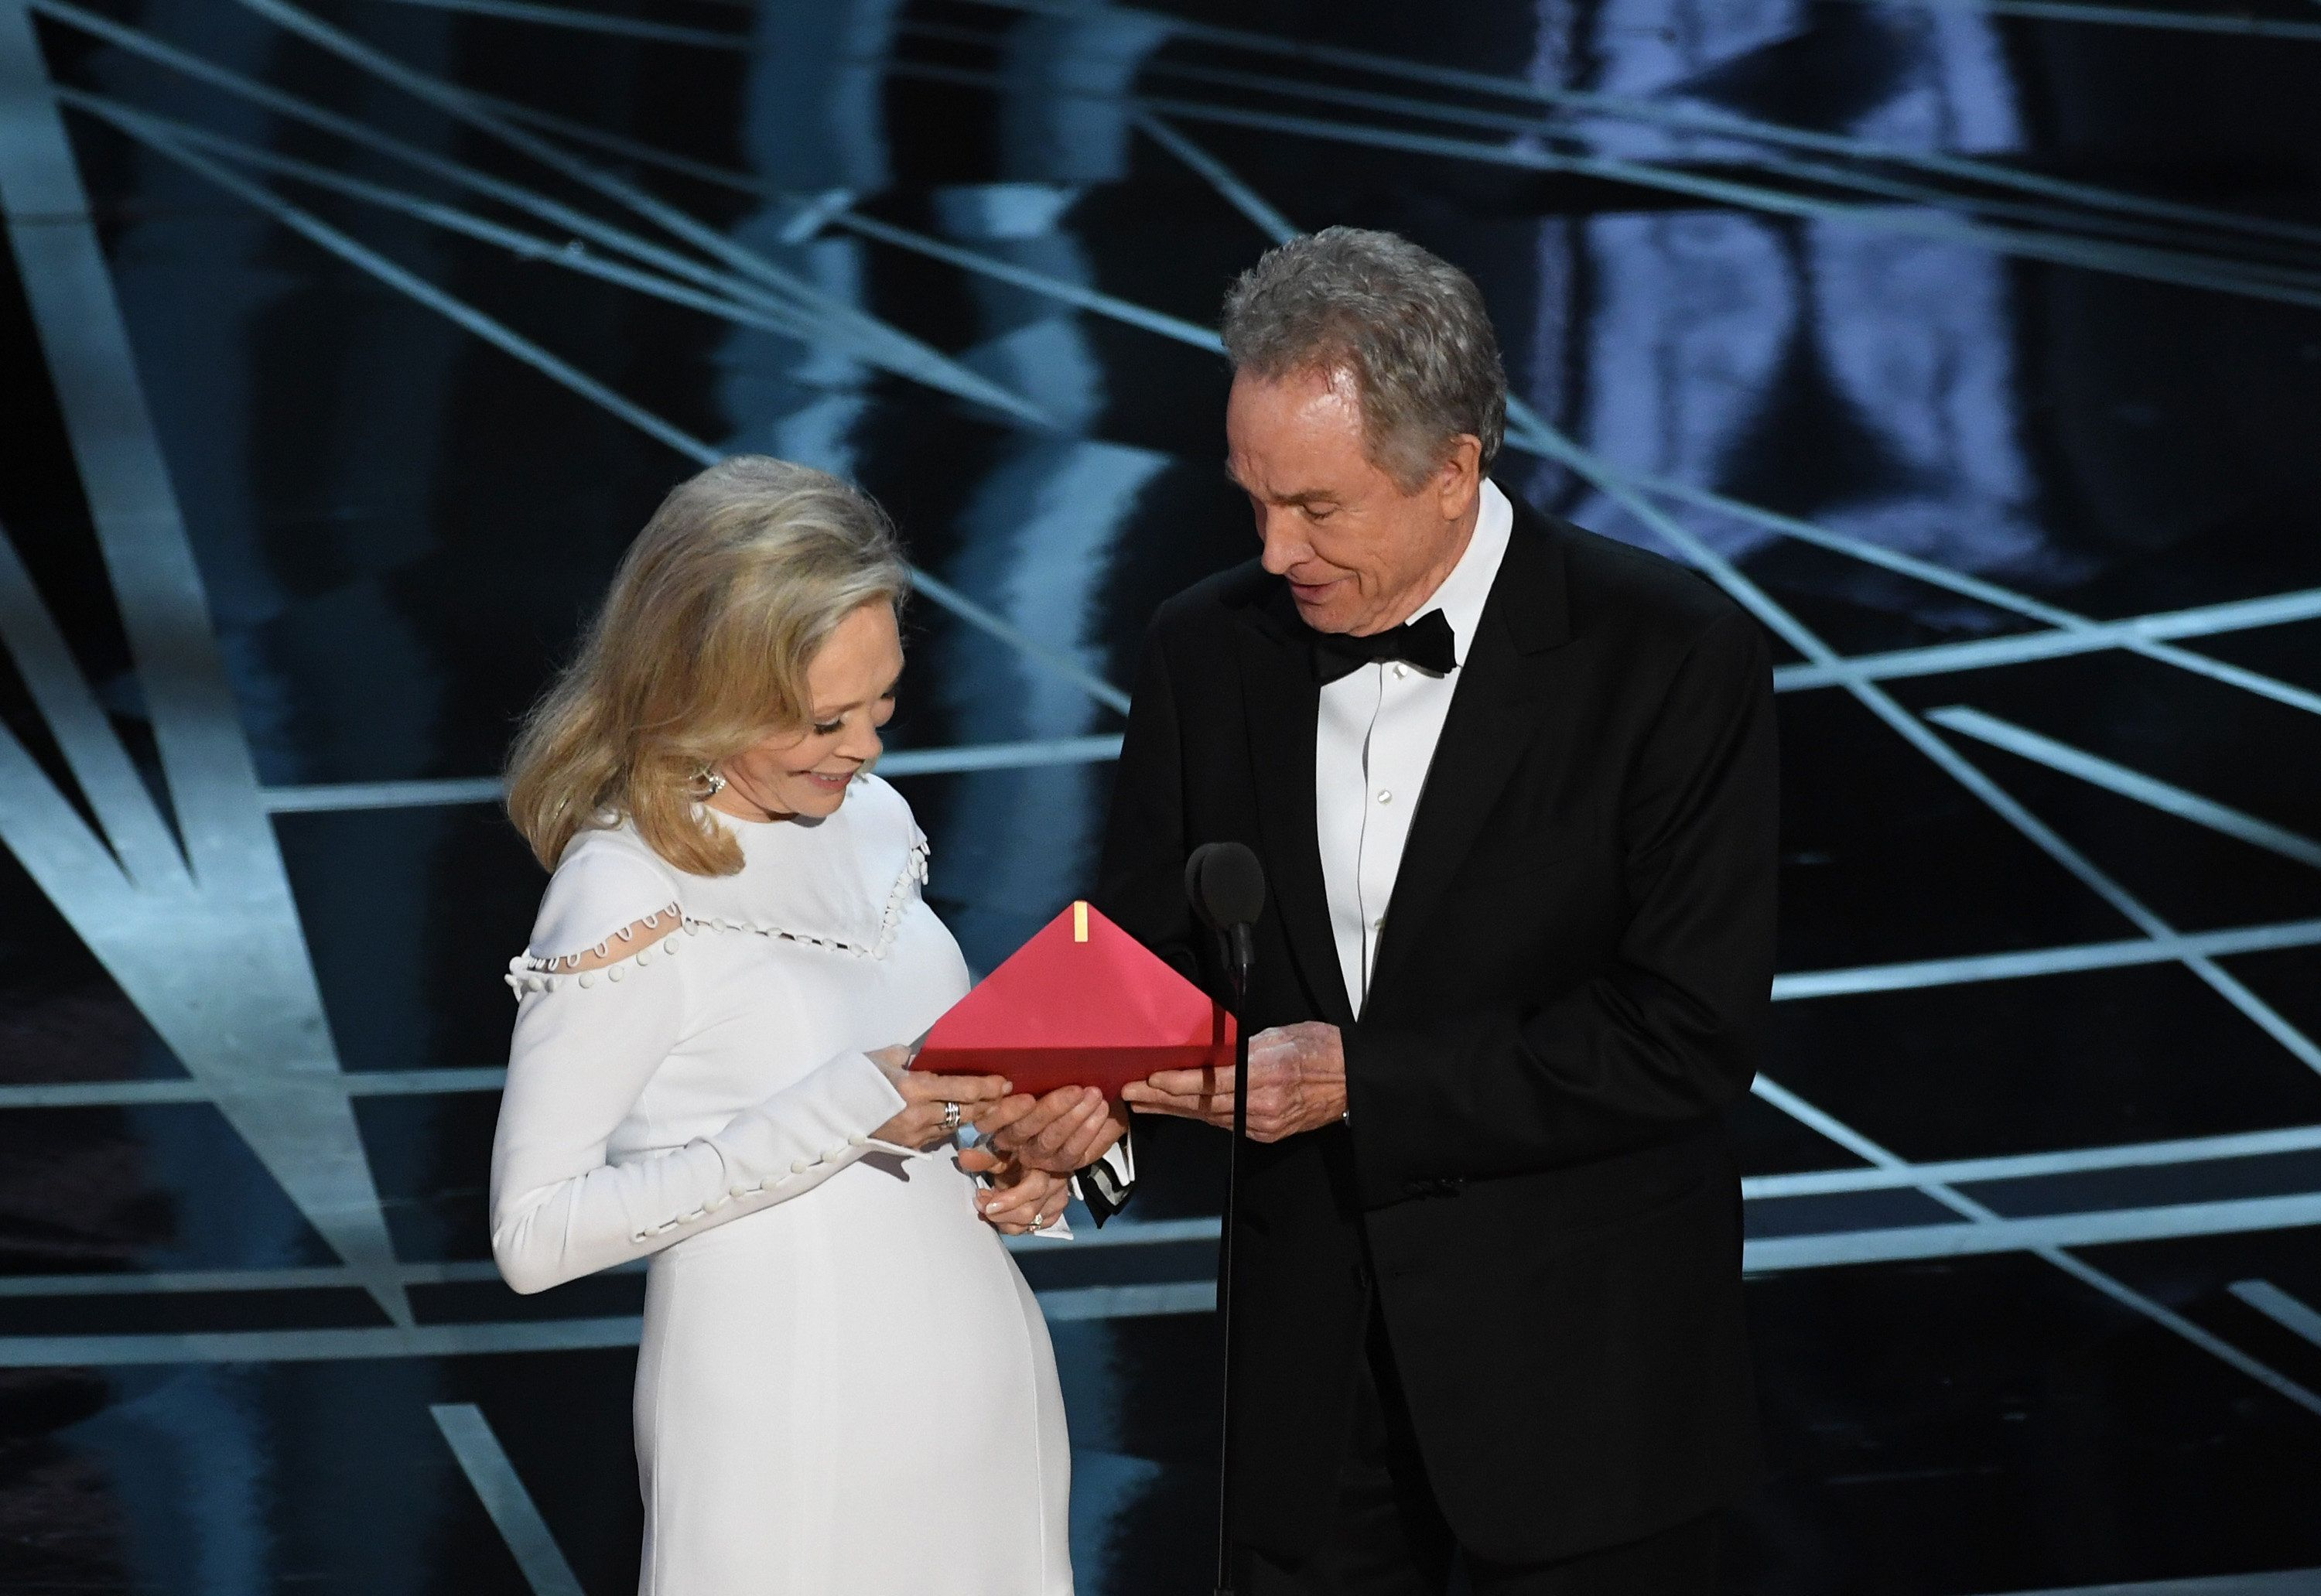 HOLLYWOOD, CA - FEBRUARY 26:  Actors Faye Dunaway (L) and Warren Beatty speak onstage during the 89th Annual Academy Awards at Hollywood & Highland Center on February 26, 2017 in Hollywood, California.  (Photo by Kevin Winter/Getty Images)